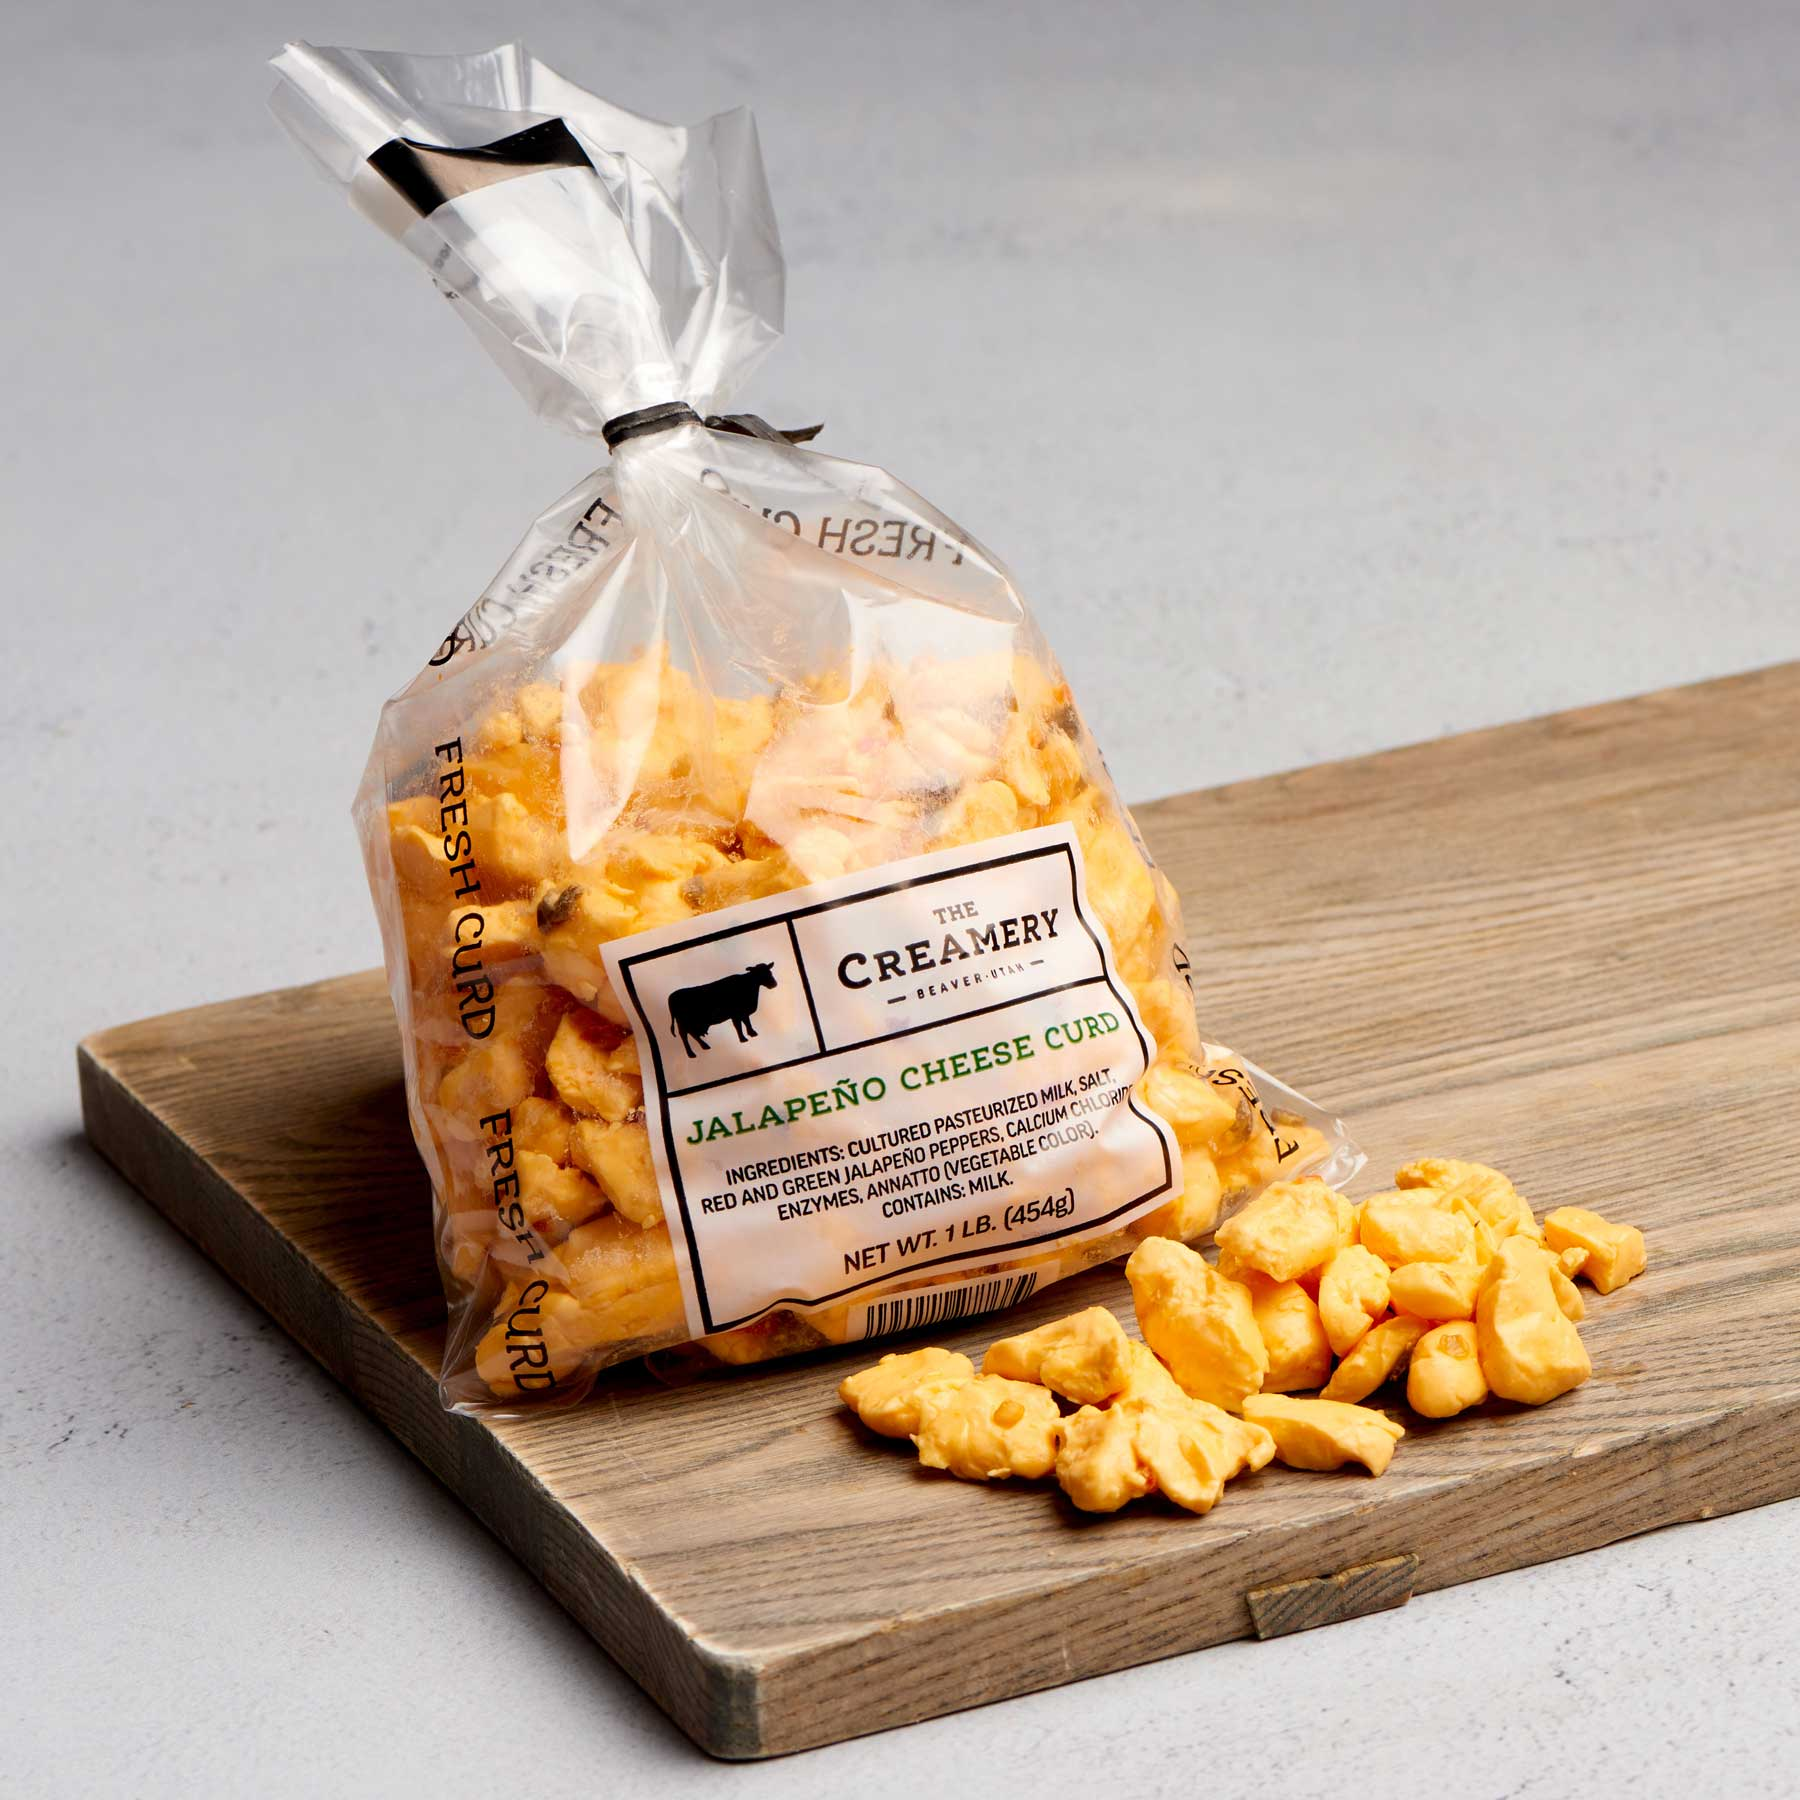 Image of Jalapeño Cheddar Curd 1 pound bag